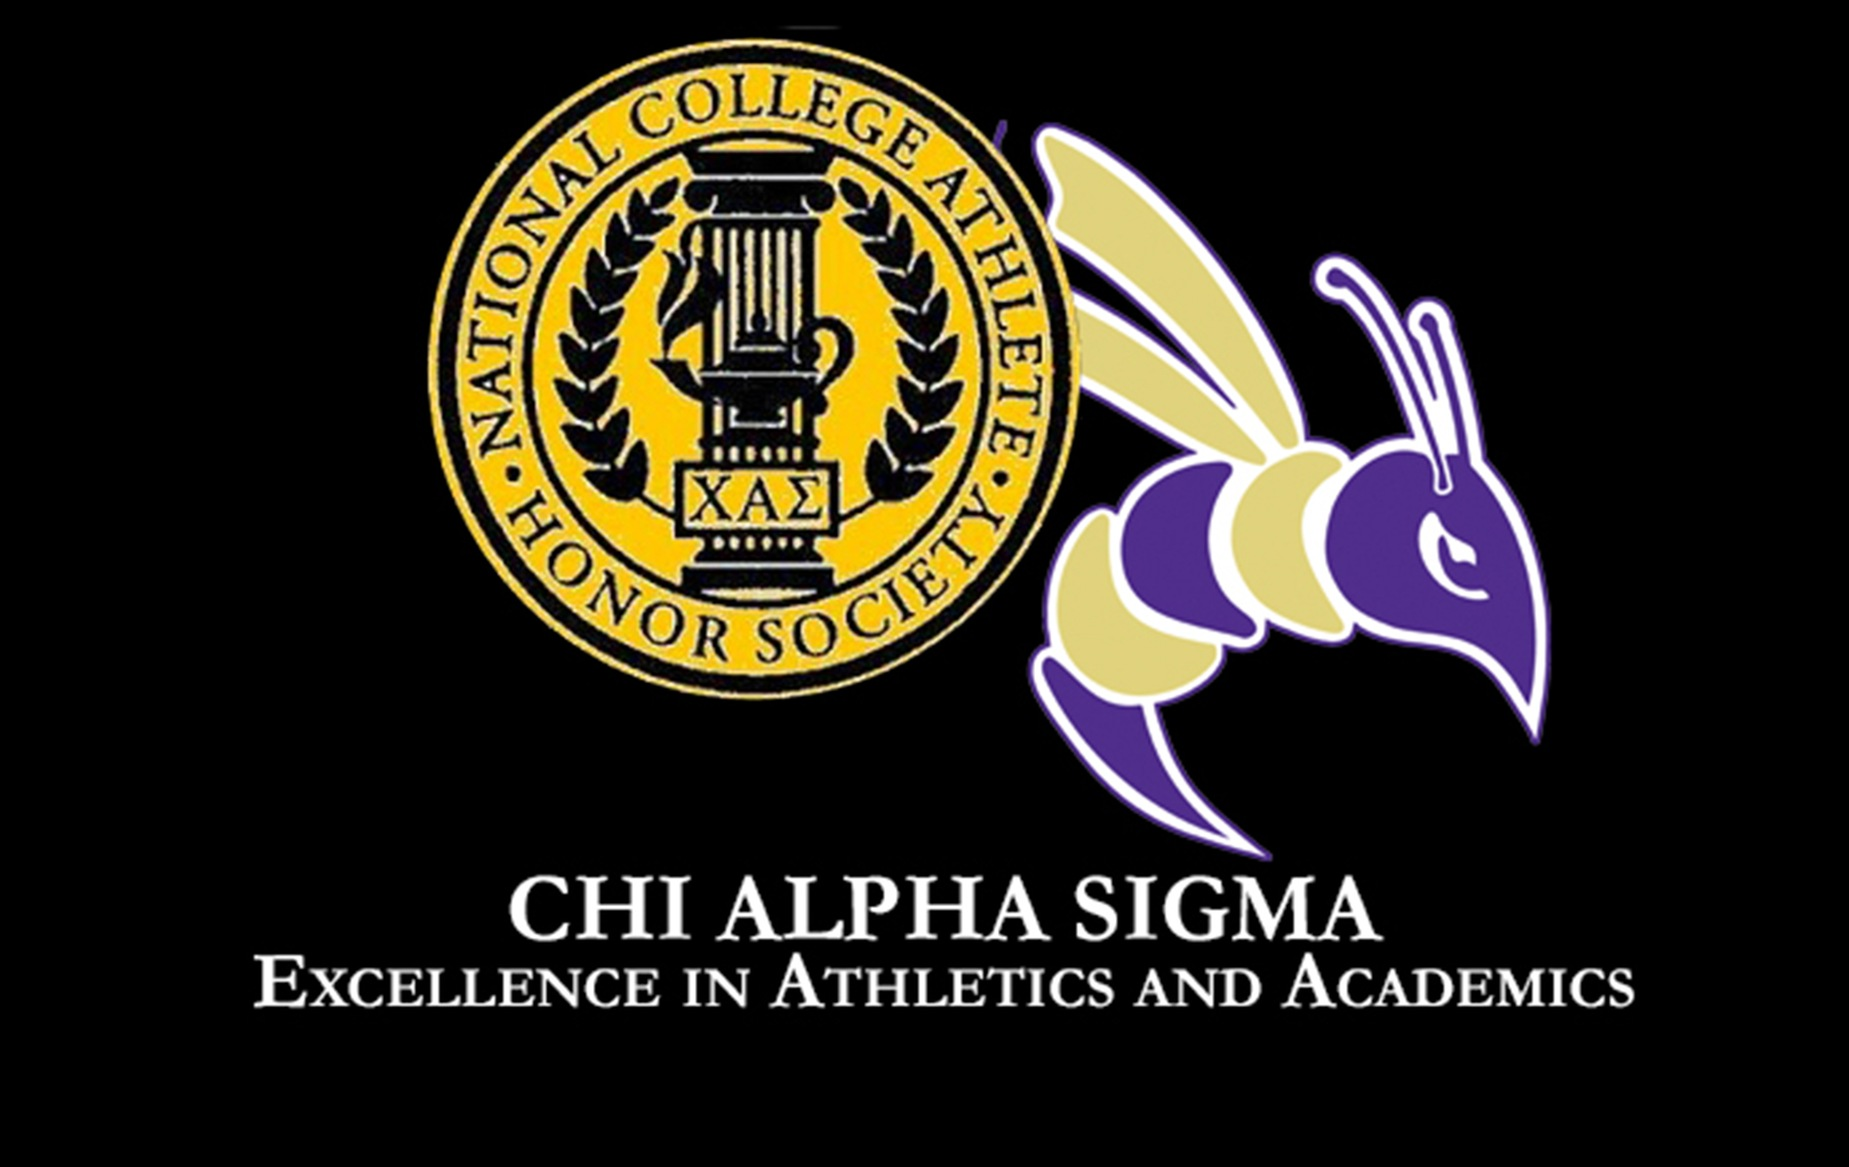 Defiance has 46 Student-Athletes Selected Chi Alpha Sigma